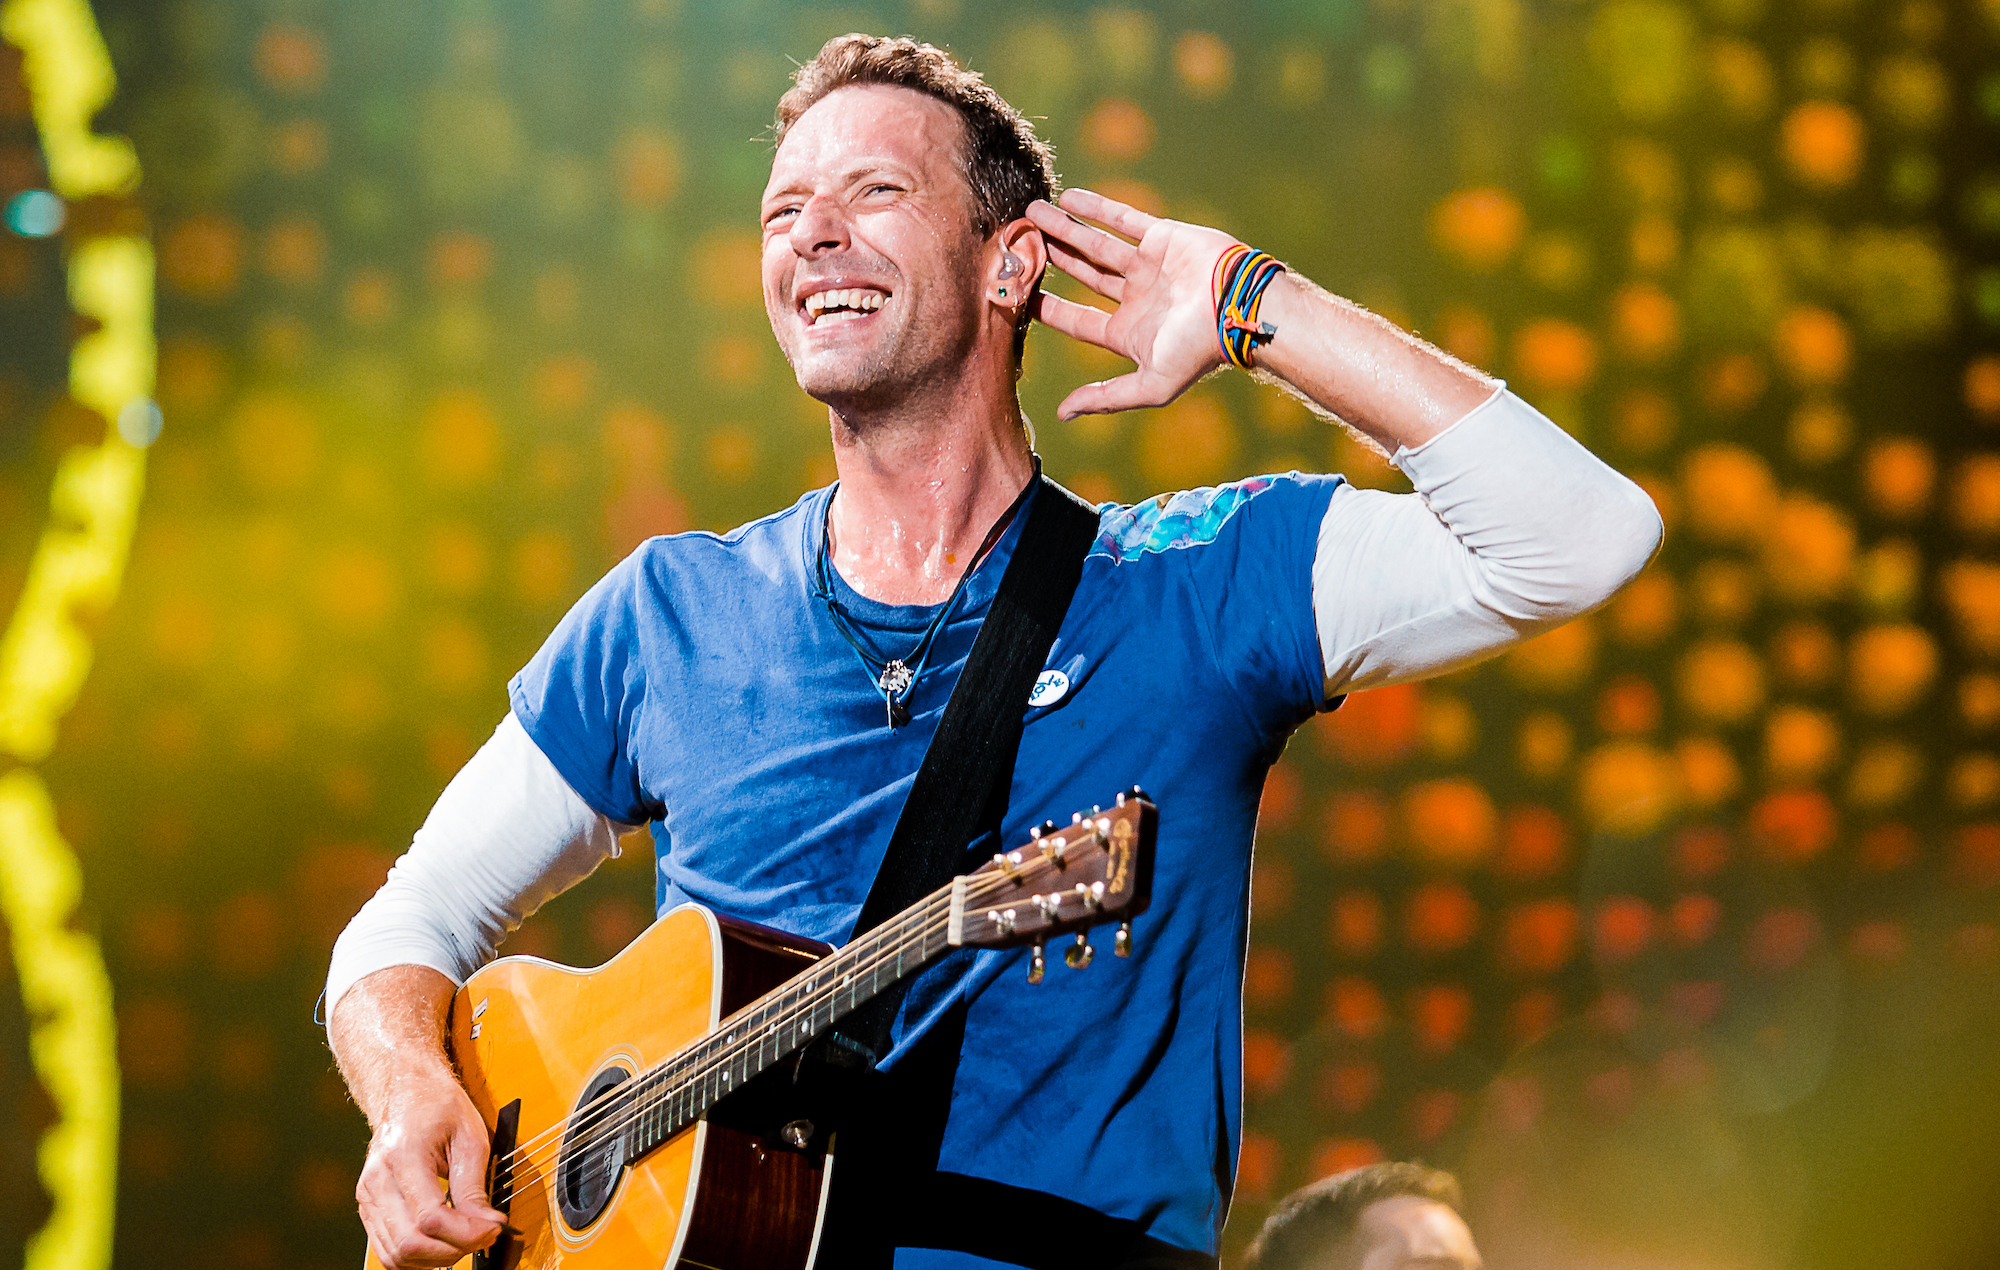 Welcome back Coldplay, even hipsters secretly think you're brilliant